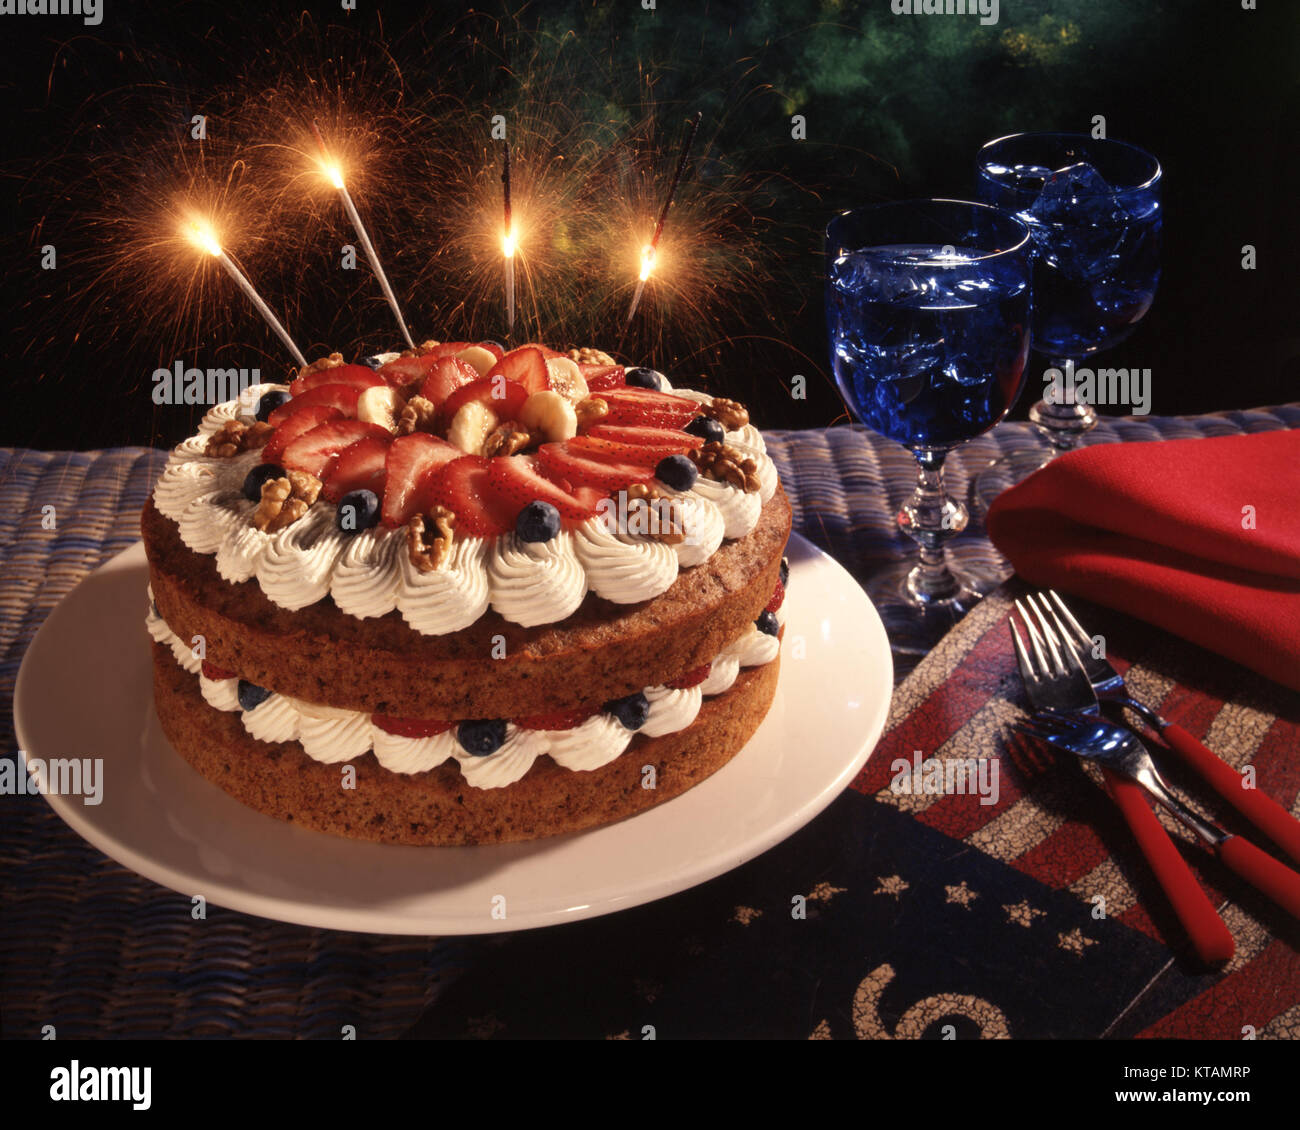 4th of July cake - Stock Image